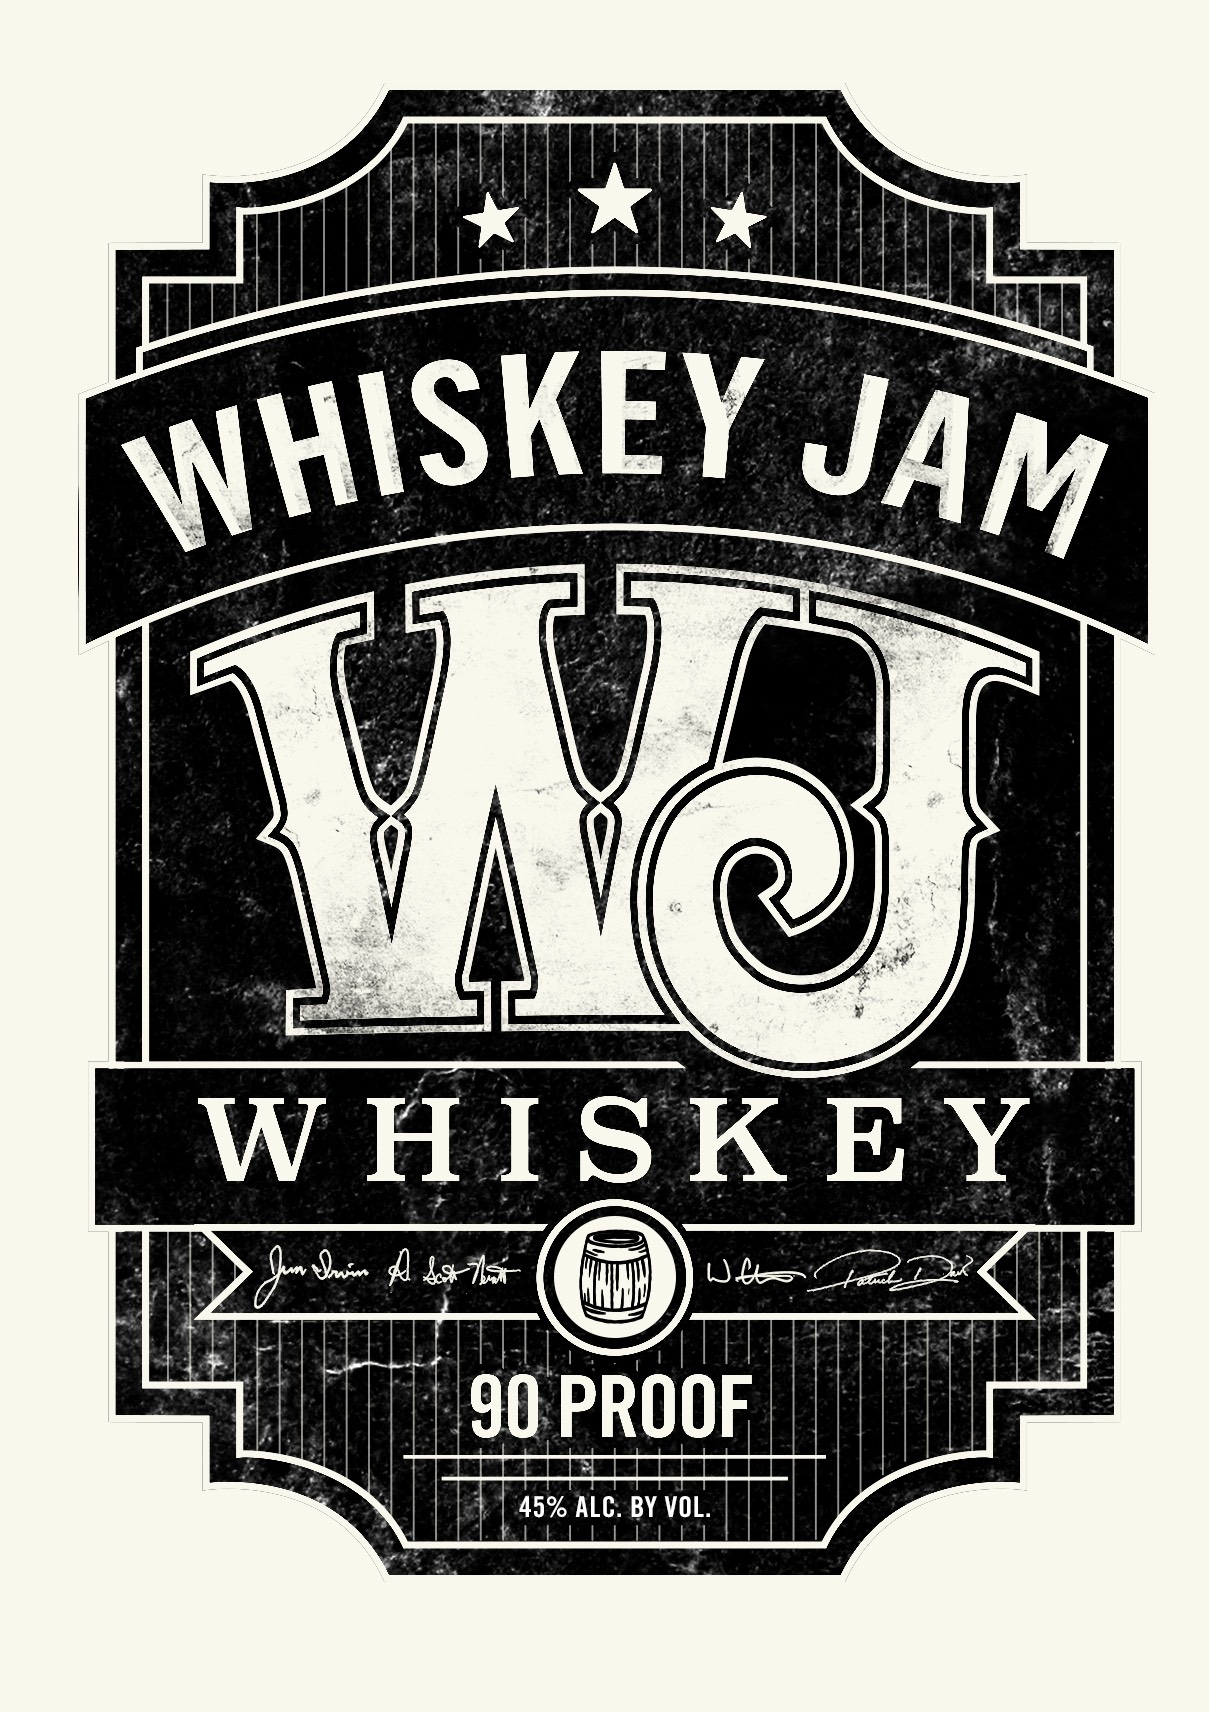 WHISKEY JAM WHISKEY - WHISKEY JAM WHISKEY IS WHERE CHARLESTON TASTE, NASHVILLE ARTISTRY & SOUTHERN FRIENDSHIP ARE FLAWLESSLY BLENDED TOGETHER TO CREATE A WORLD CLASS AMERICAN WHISKEY. FOR MORE INFO ON WHISKEY JAM WHISKEY CLICK HERE.